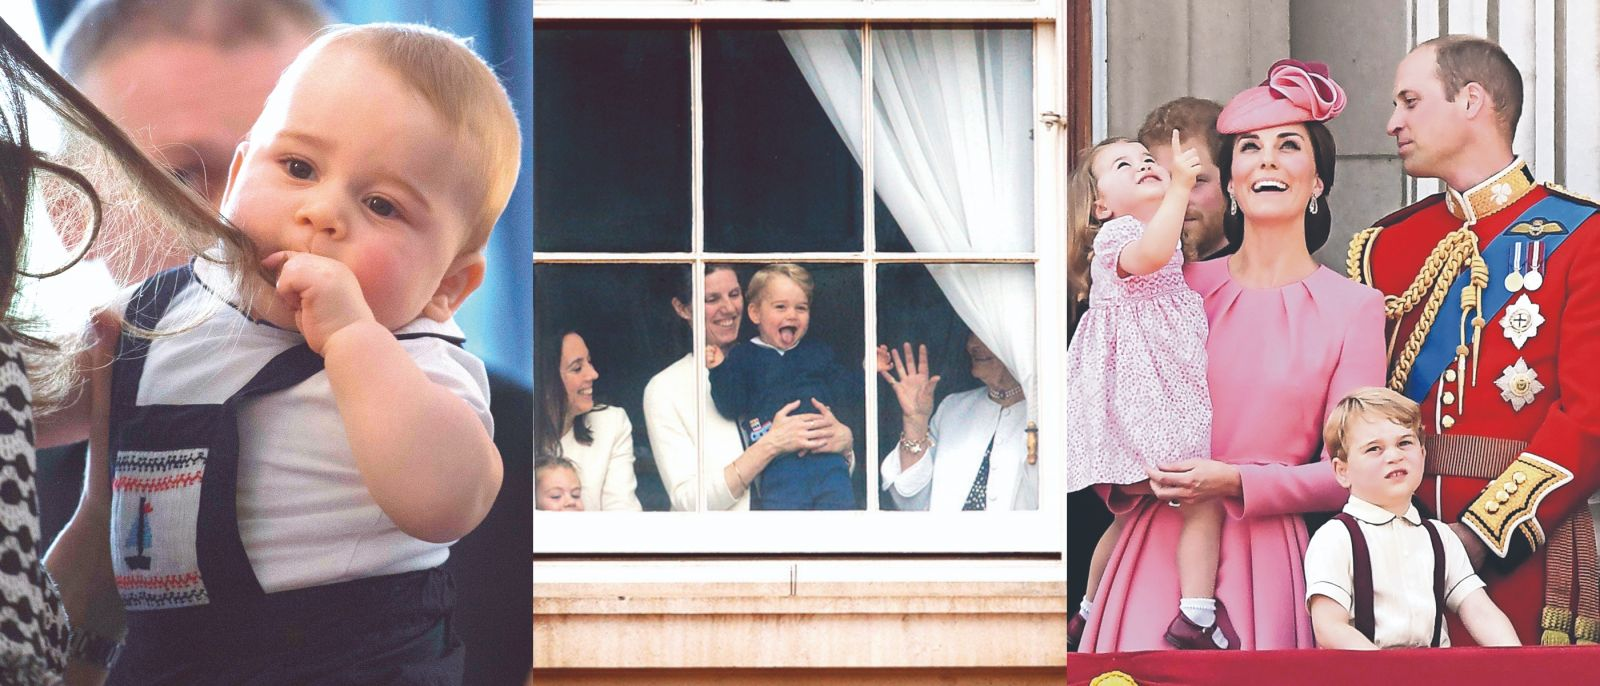 Cumpleaños principe george, principe george inglaterra, duques de cambridge, kate middleton, principe william, hijo kate middleton y principe william